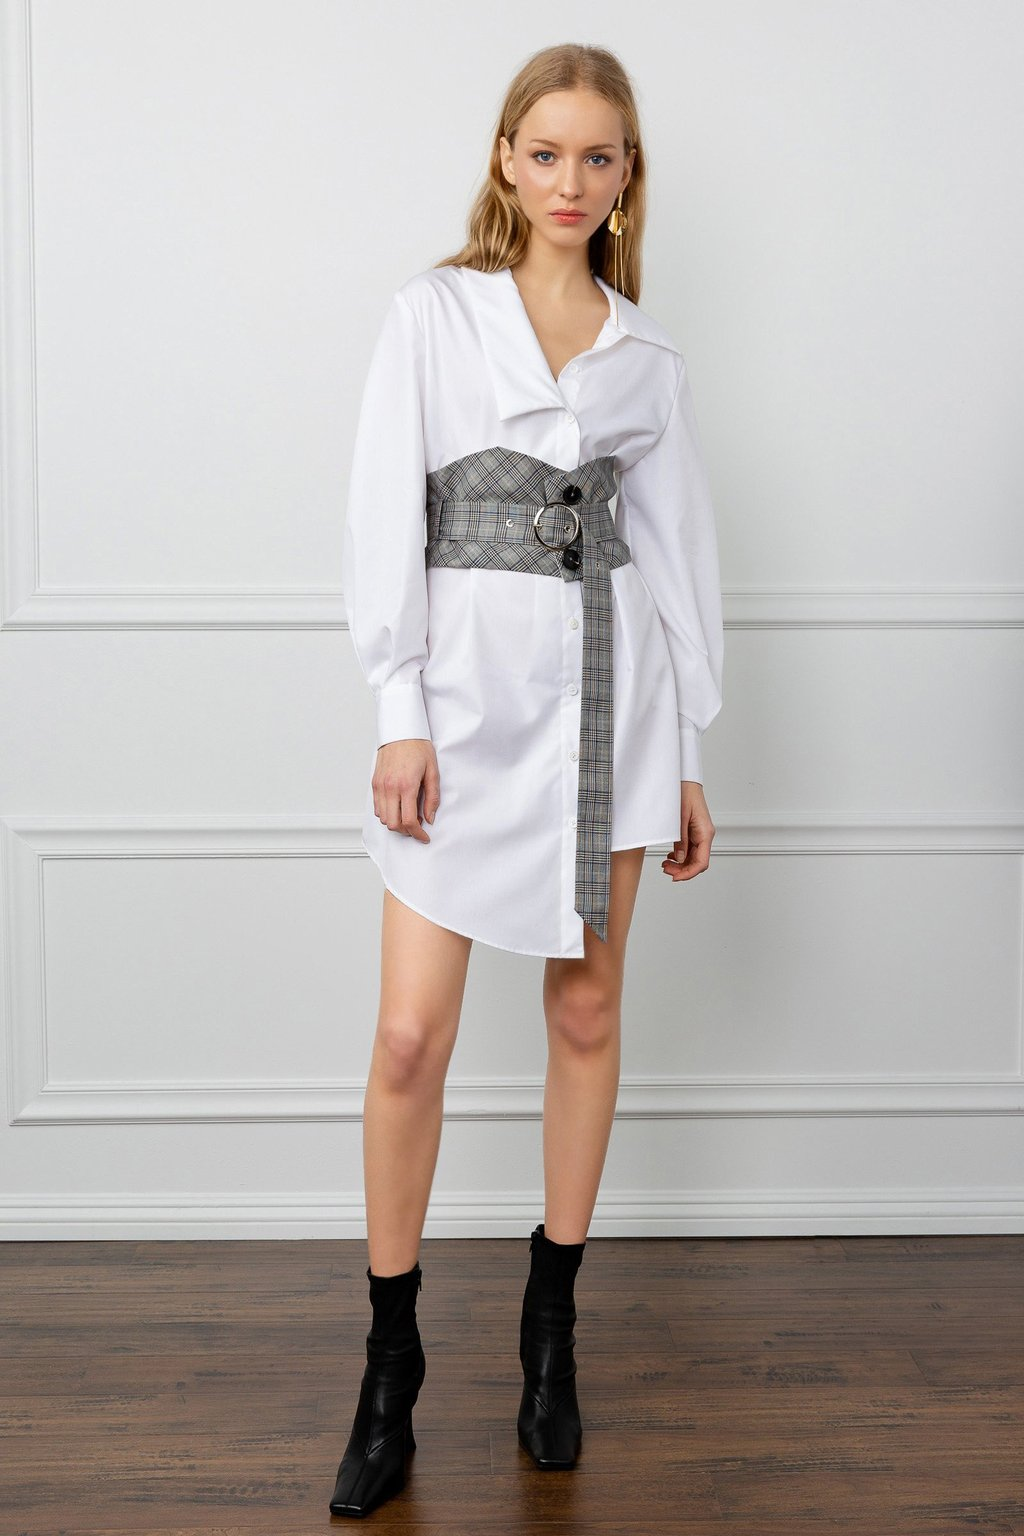 Kylie Dress by J.ING women's fashion clothing